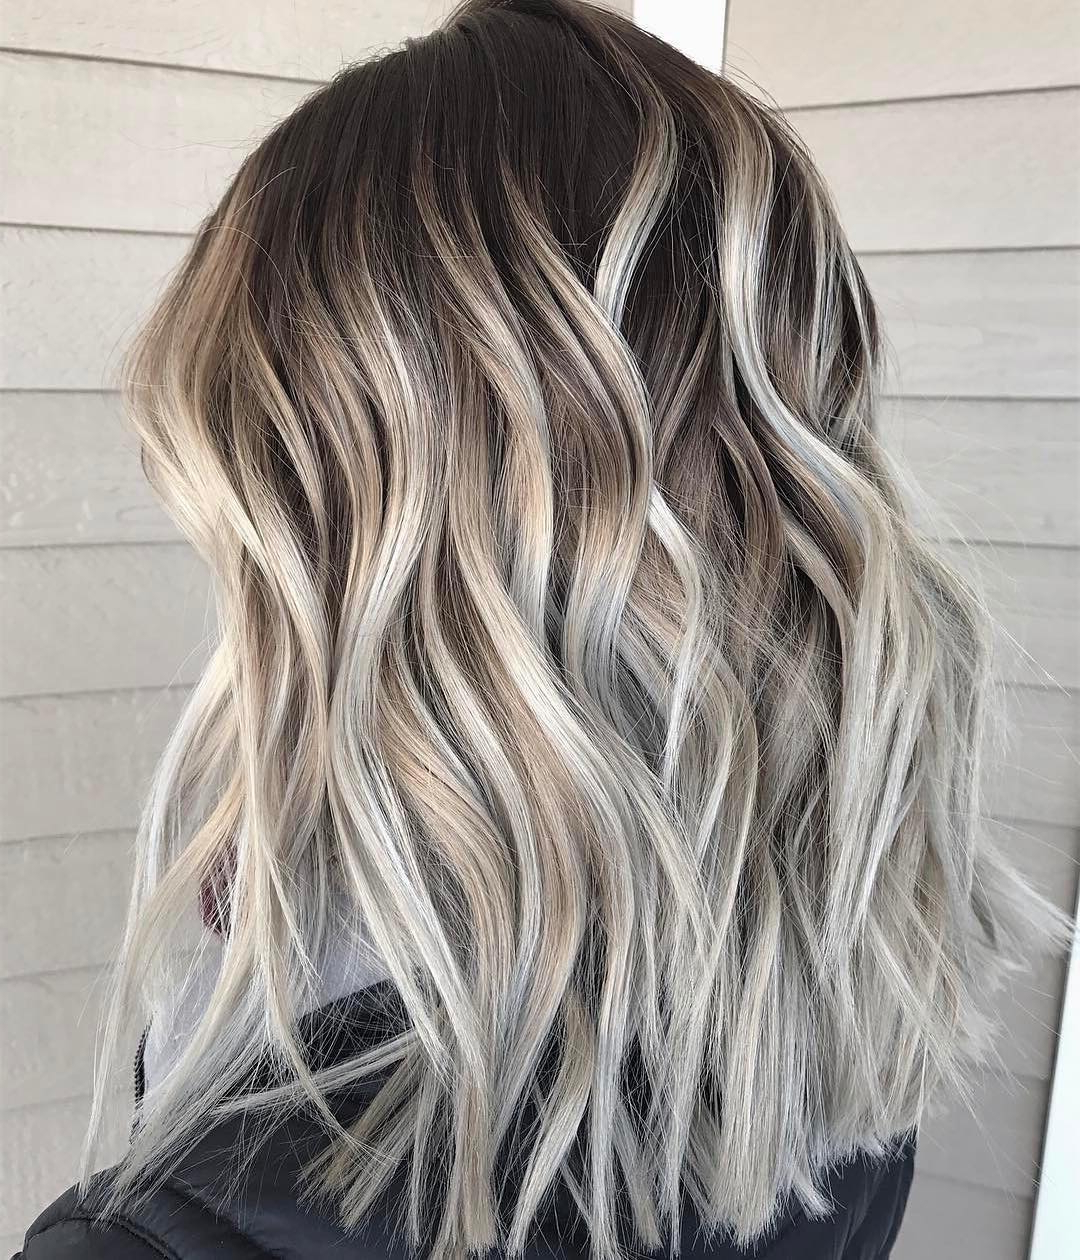 2018 Medium Hairstyles For Grey Hair With 10 Best Medium Hairstyles For Women – Shoulder Length Hair Cuts 2019 (Gallery 9 of 20)